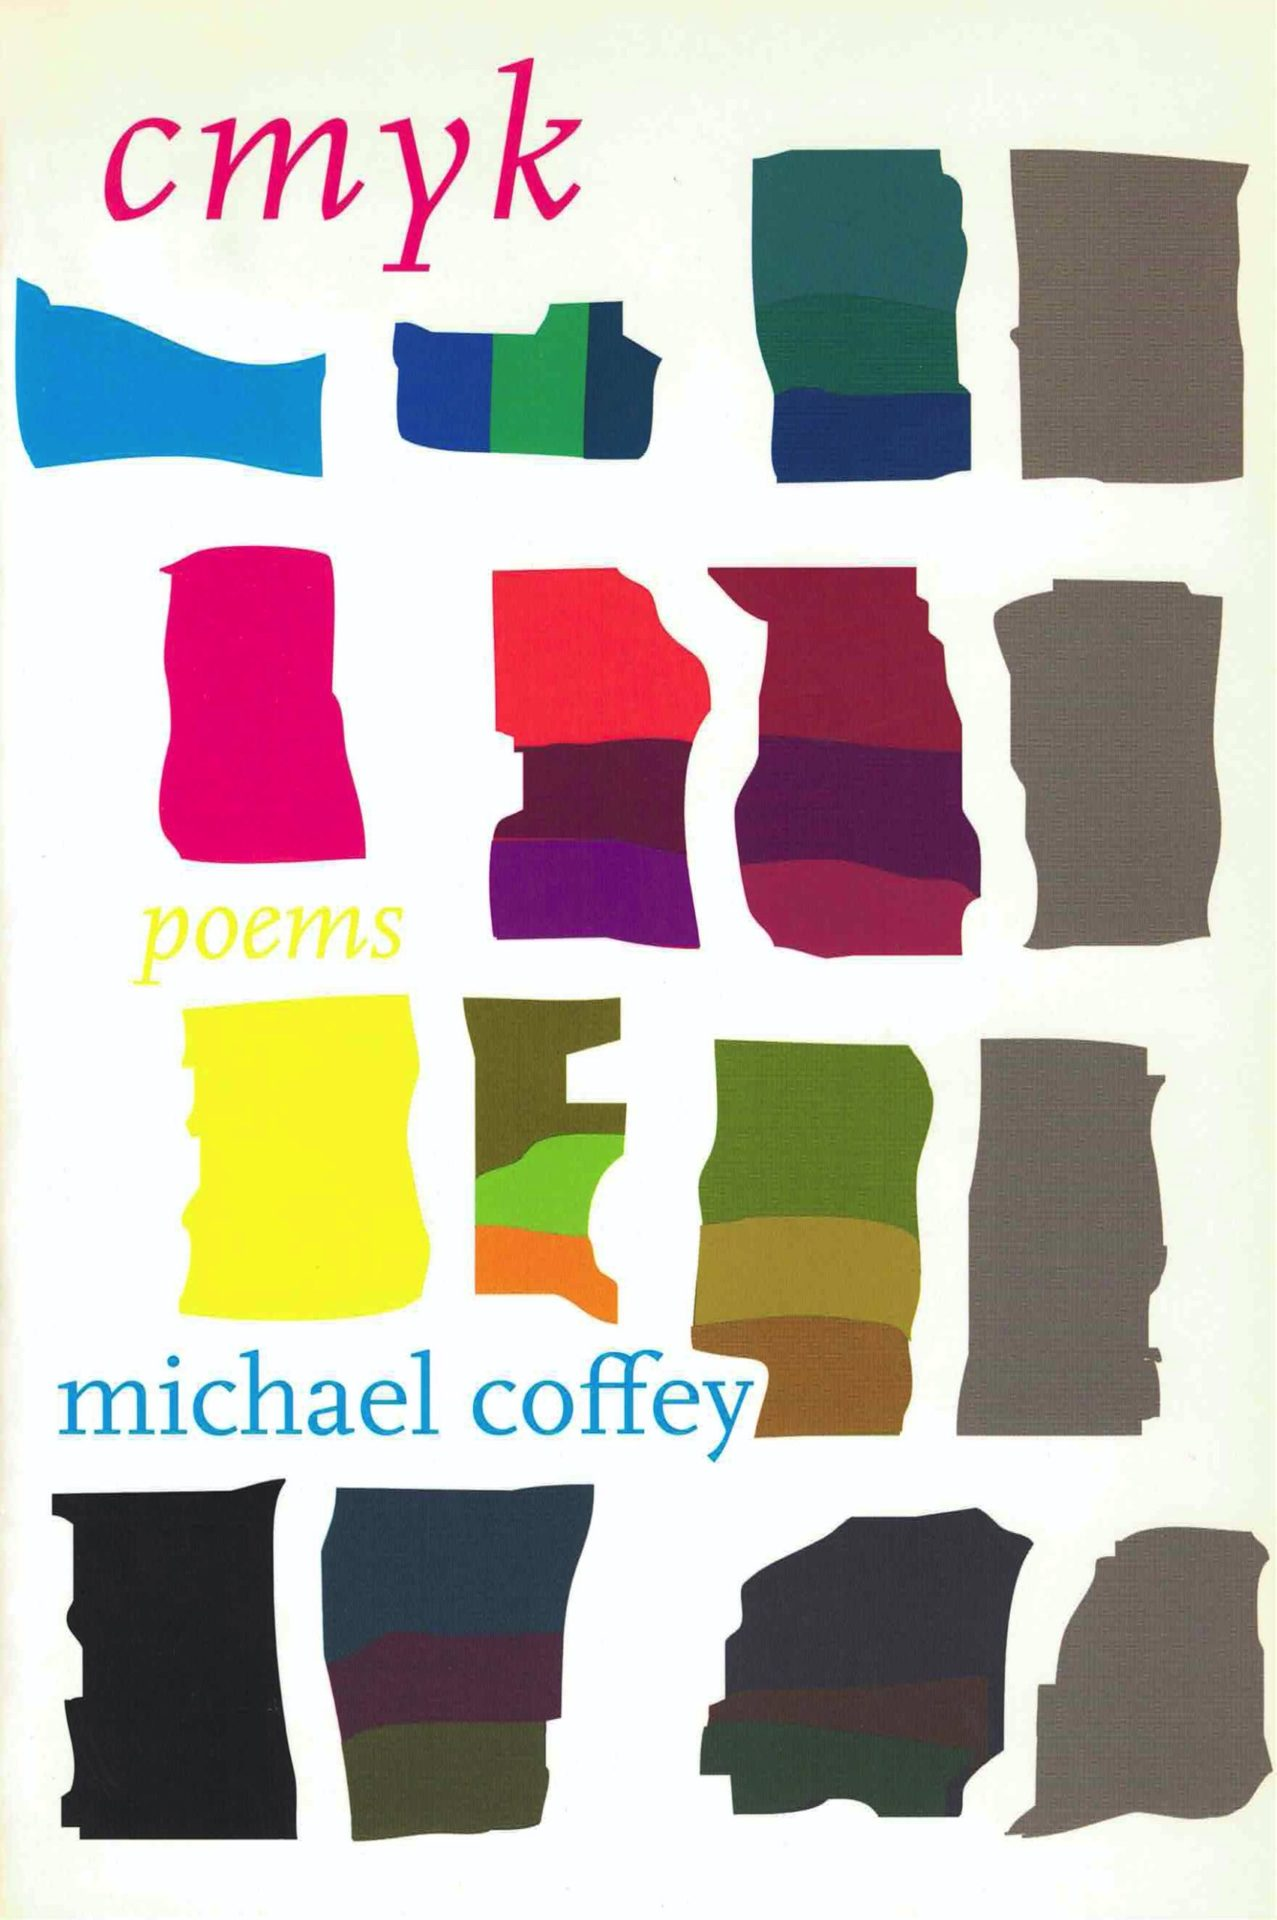 cover of cmyk by Michael Coffey; 4x4 grid of differently sized, colorful swatches of blues, reds, yellows, greens, and greys on a white background